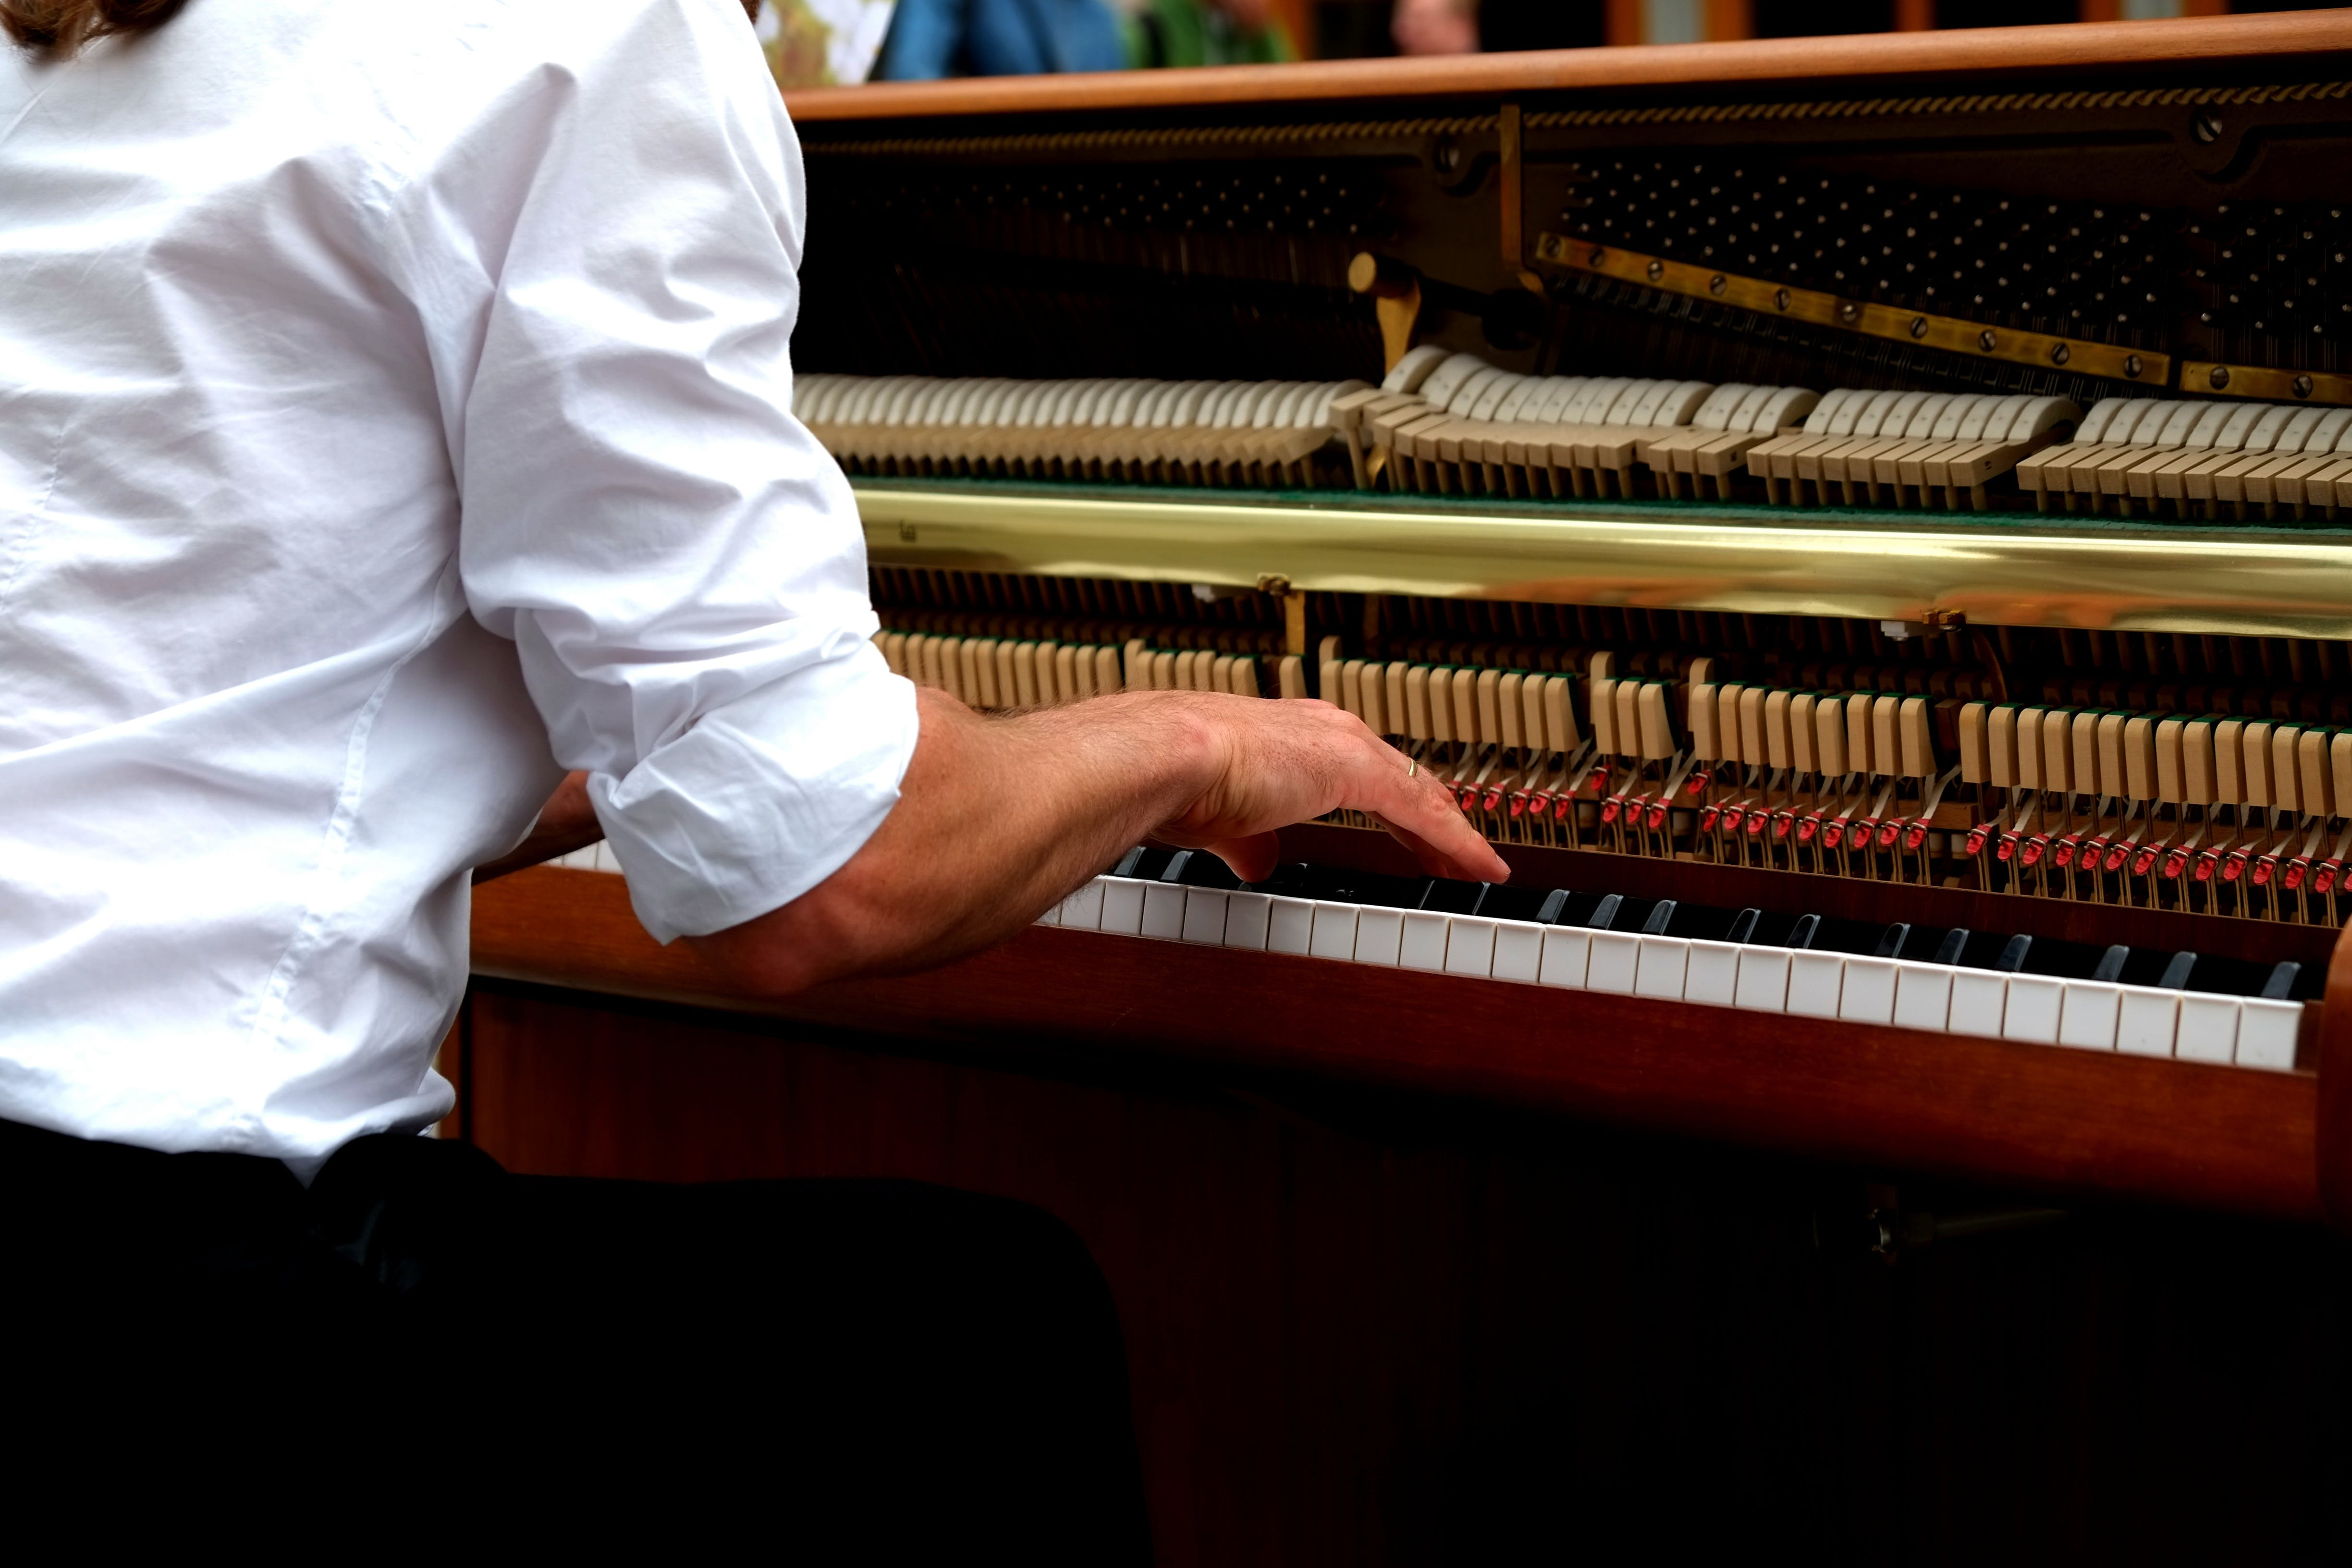 Brown White and Beige Upright Piano